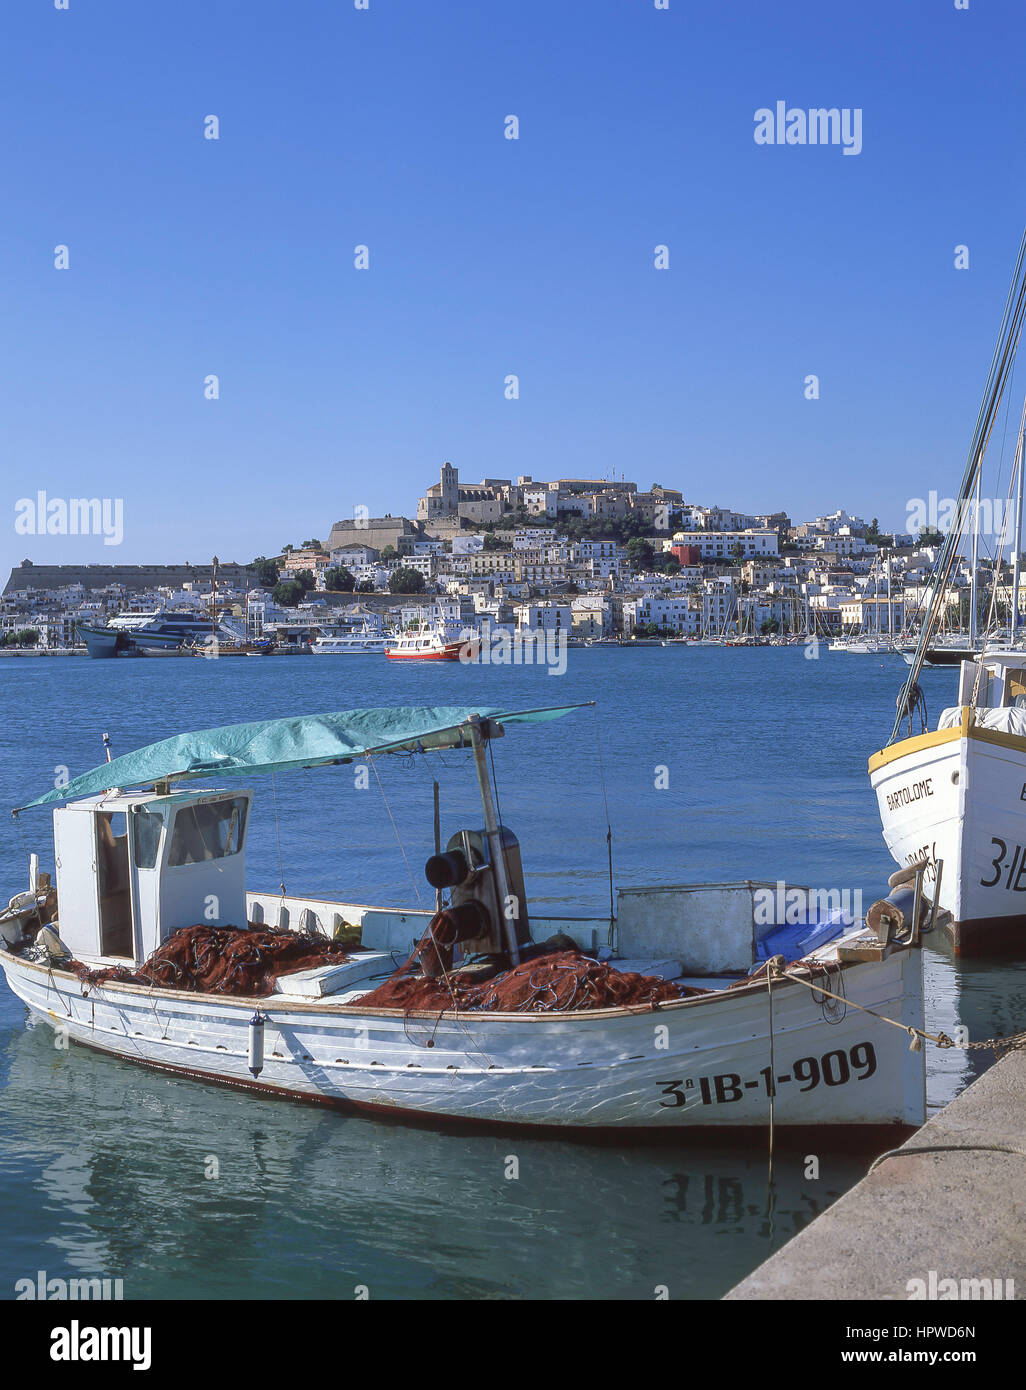 View of Old Town and Dalt Vila from Port, Eivissa, Ibiza, Balearic Islands, Spain - Stock Image